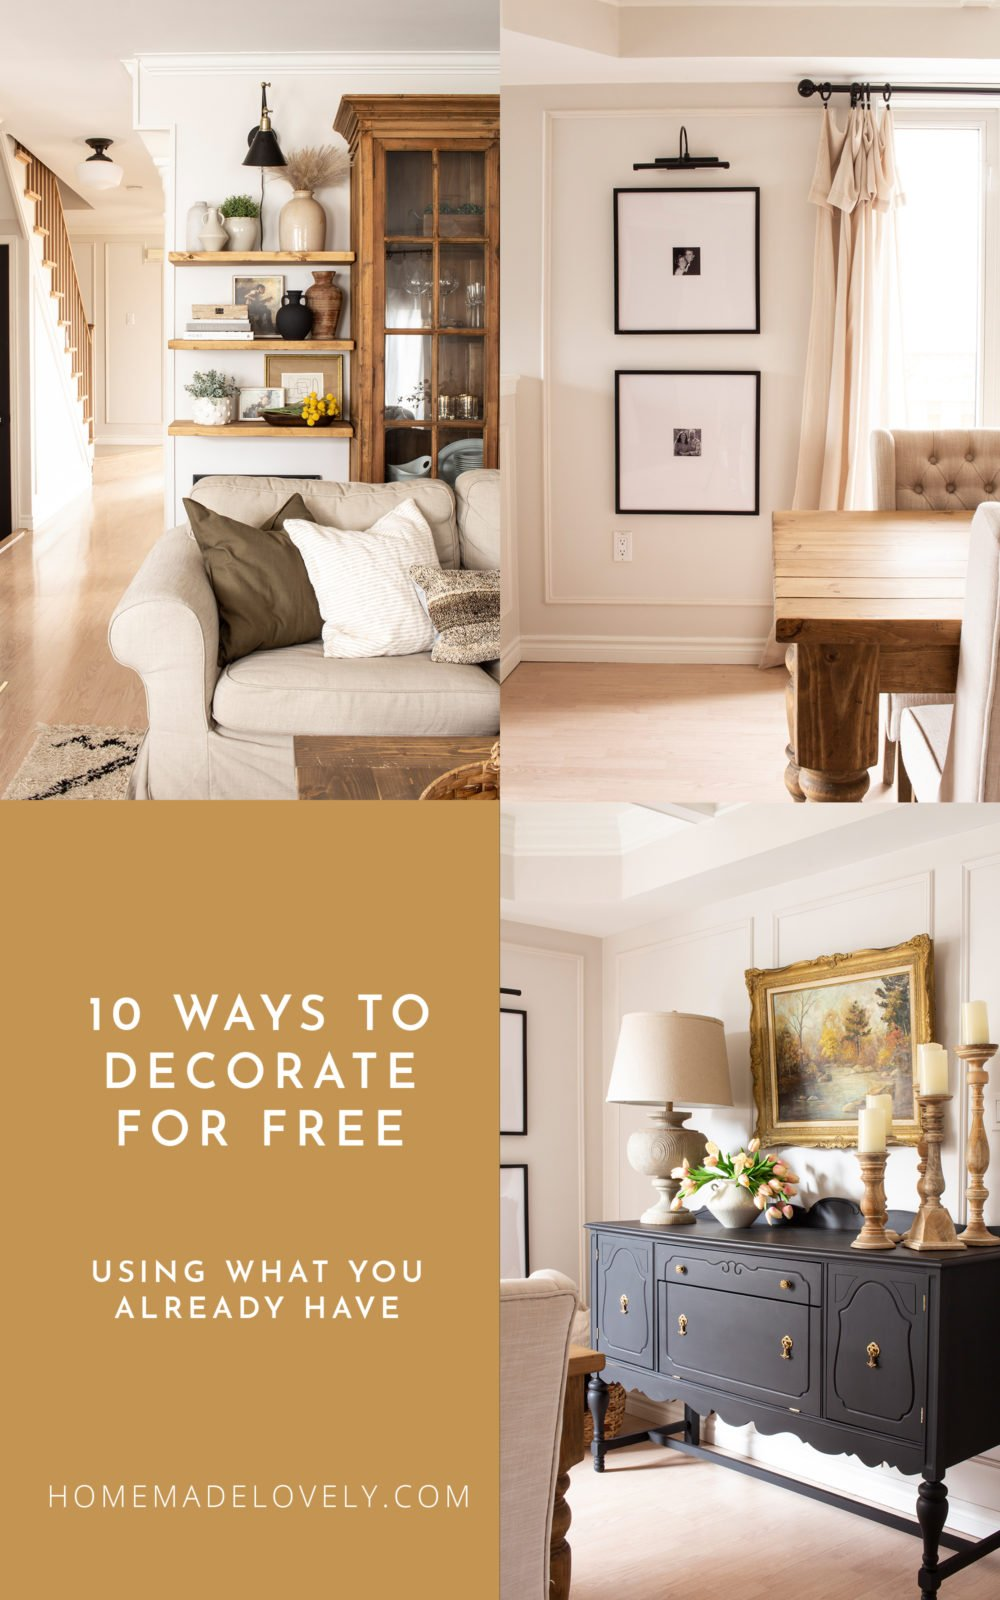 10 ways to decorate for free text over yellow background